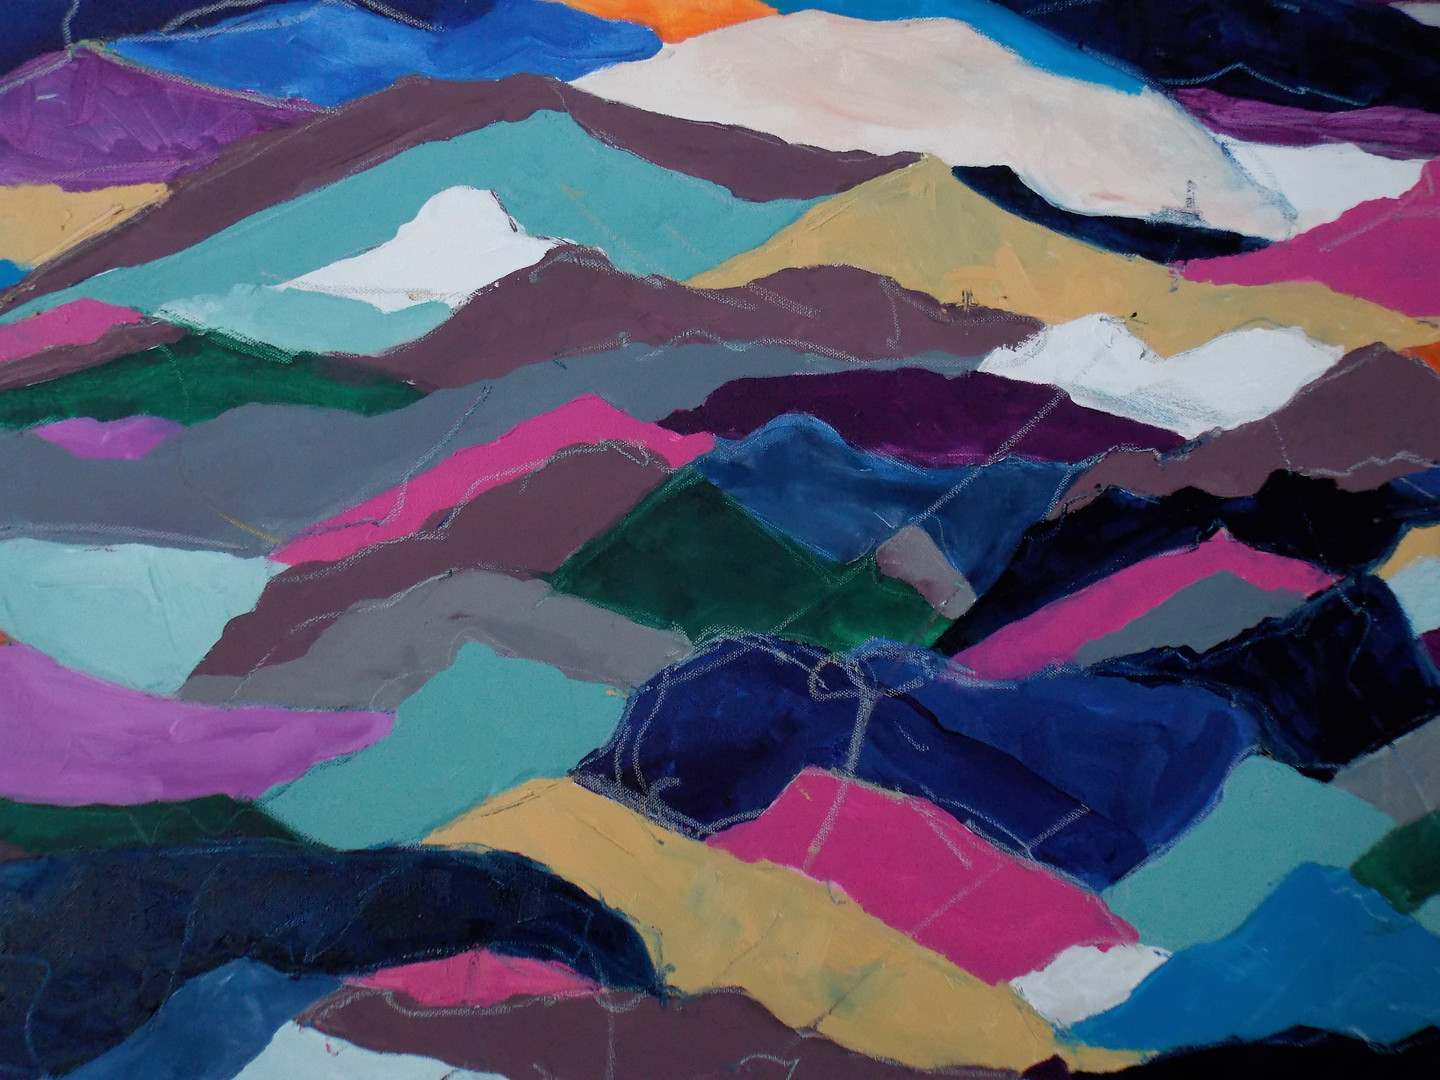 Colored Mountains Close Up 1